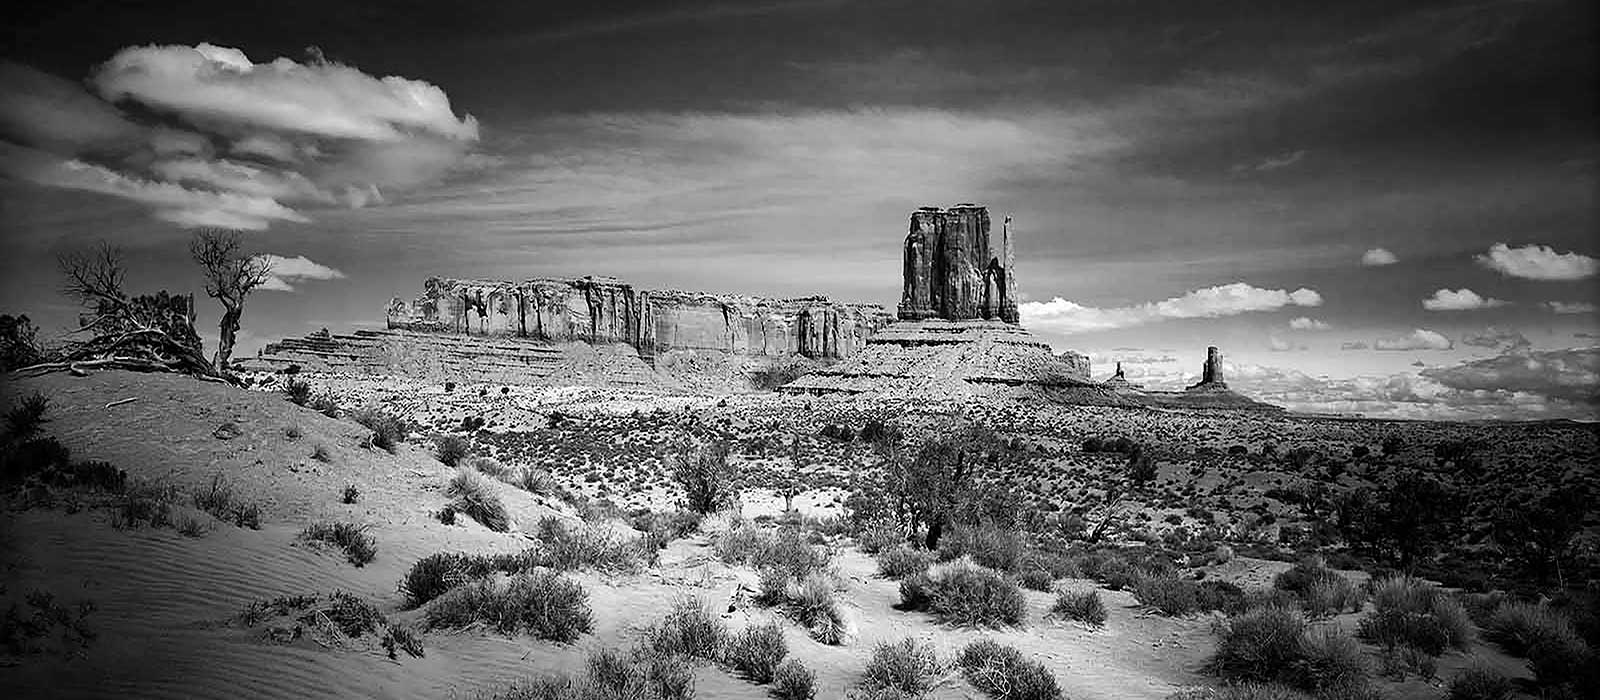 Monument valley 4 2013